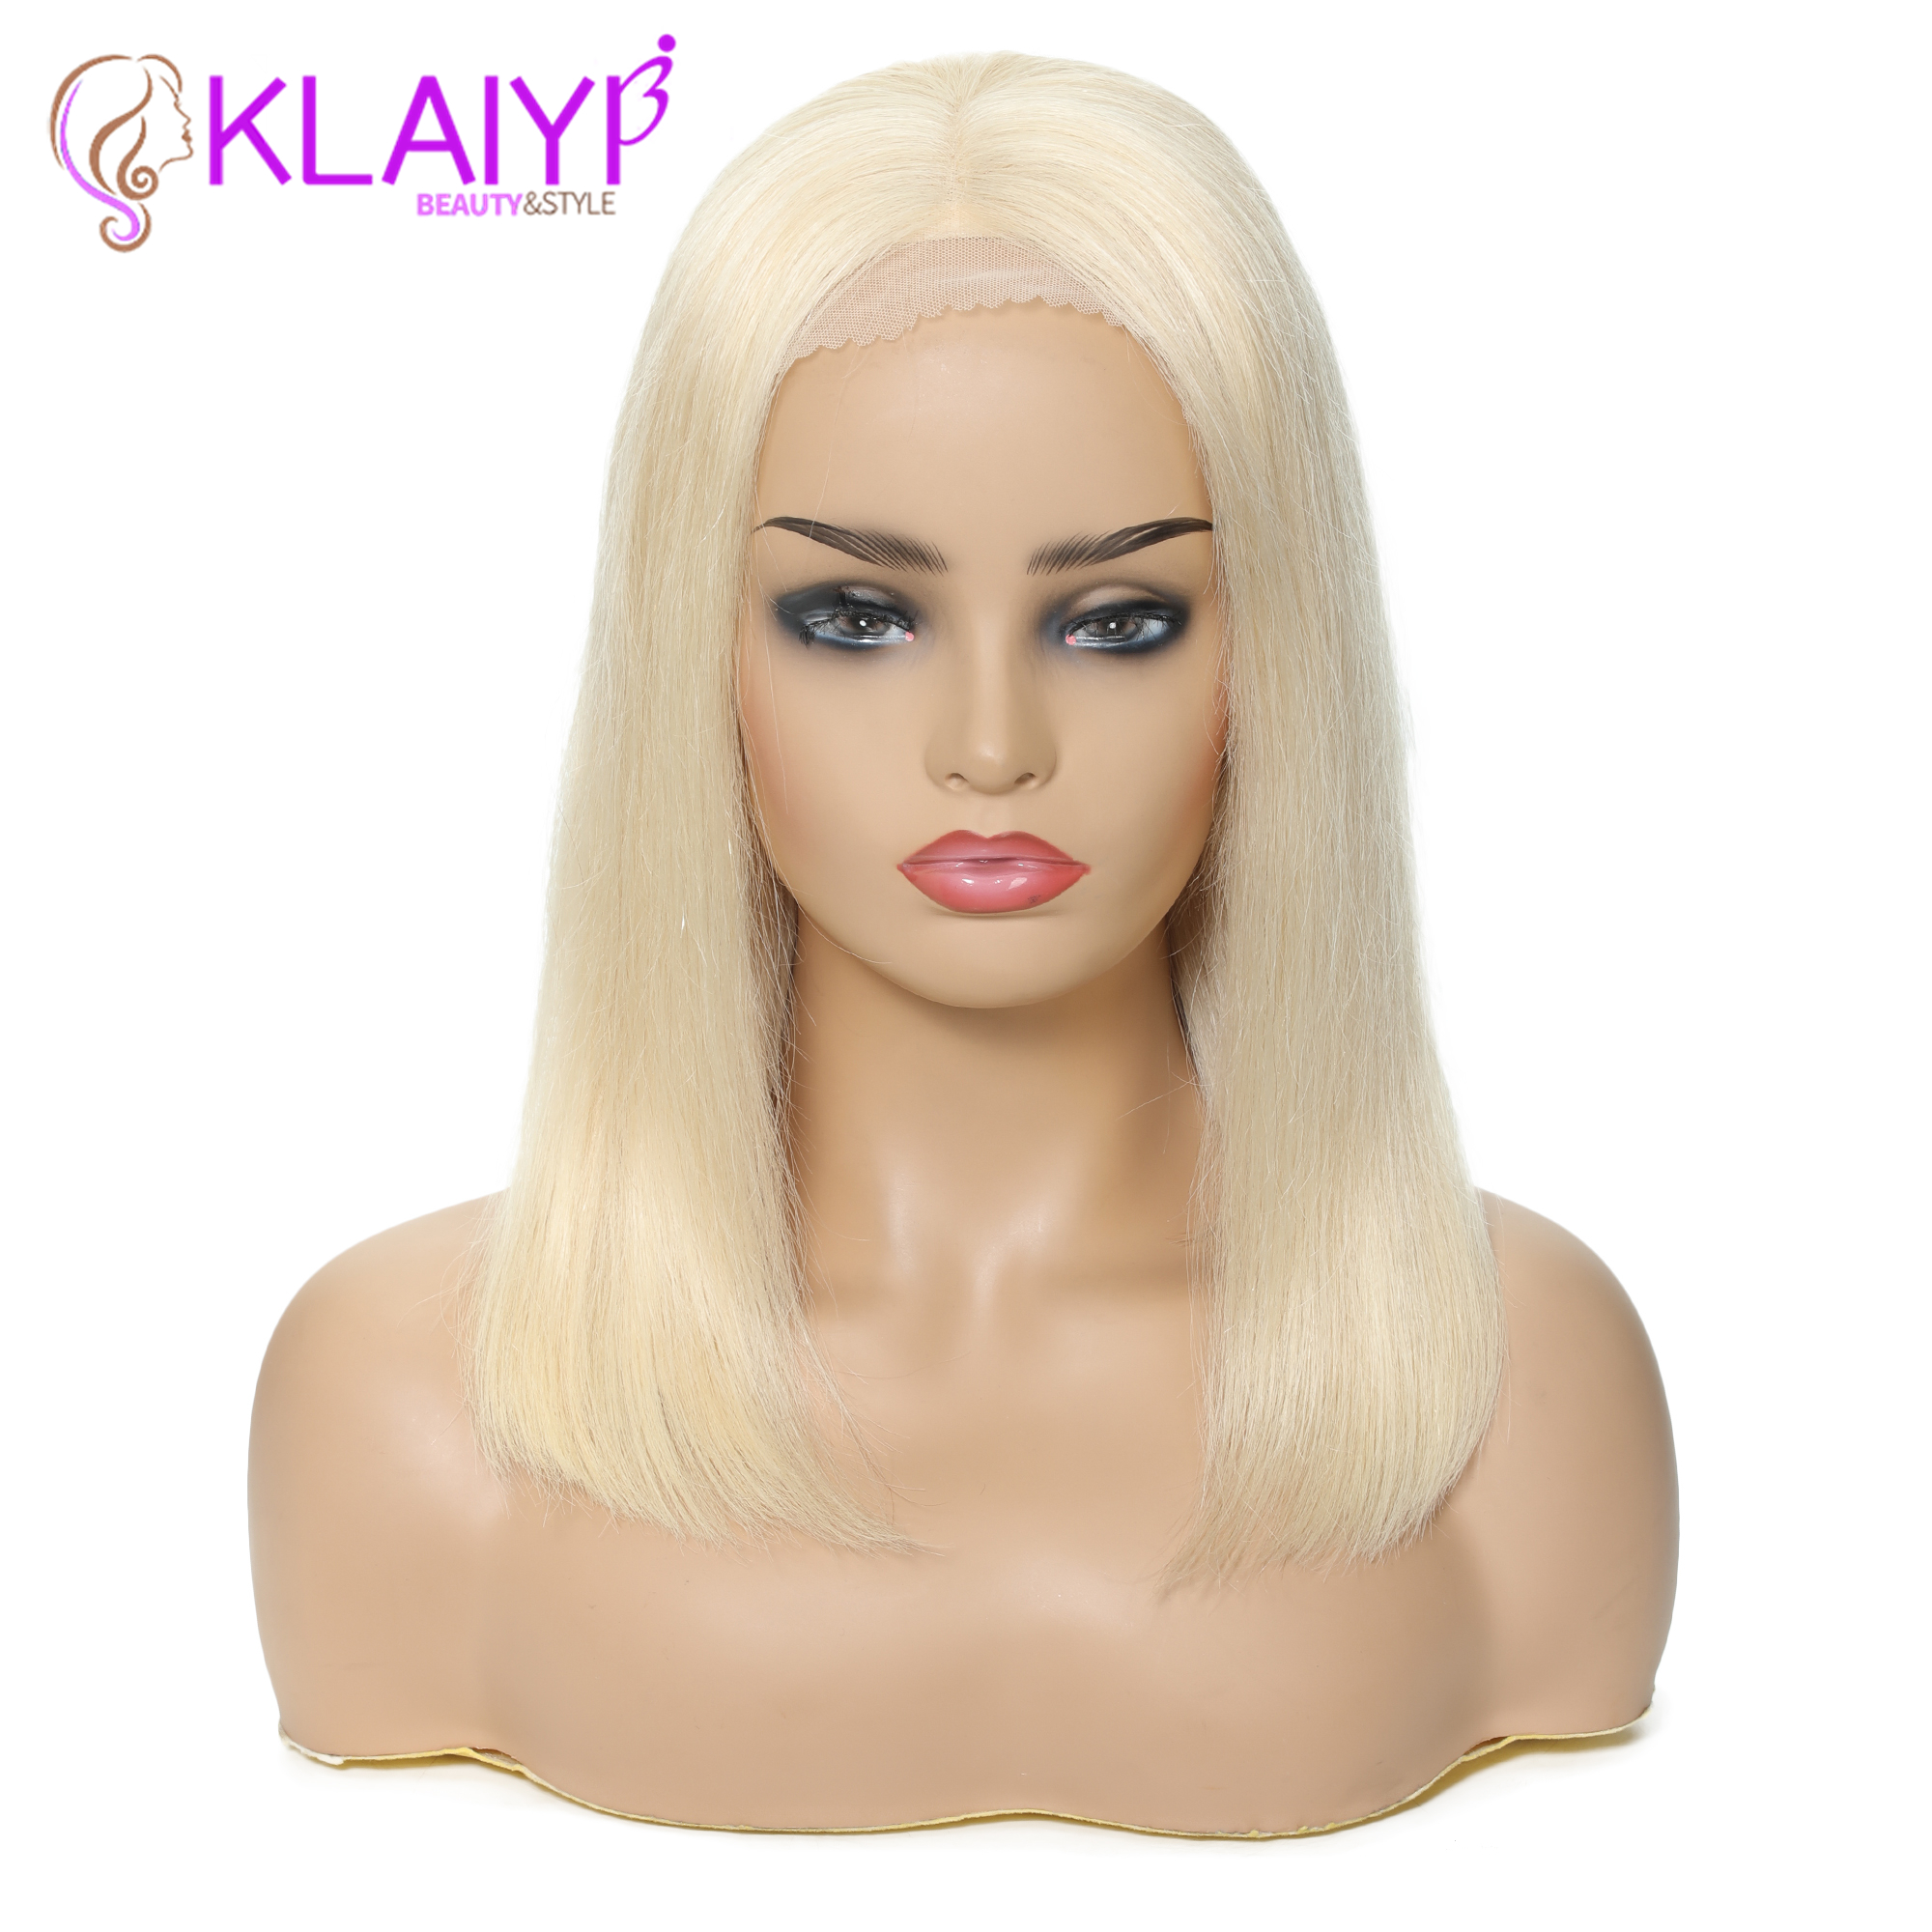 Klaiyi Hair Straight Bob Human Hair Wigs 8 14 inch Pre Plucked Brazilian Remy Hair 13*4/13*6 inch Lace Front Wig 150% Density-in Human Hair Lace Wigs from Hair Extensions & Wigs    2